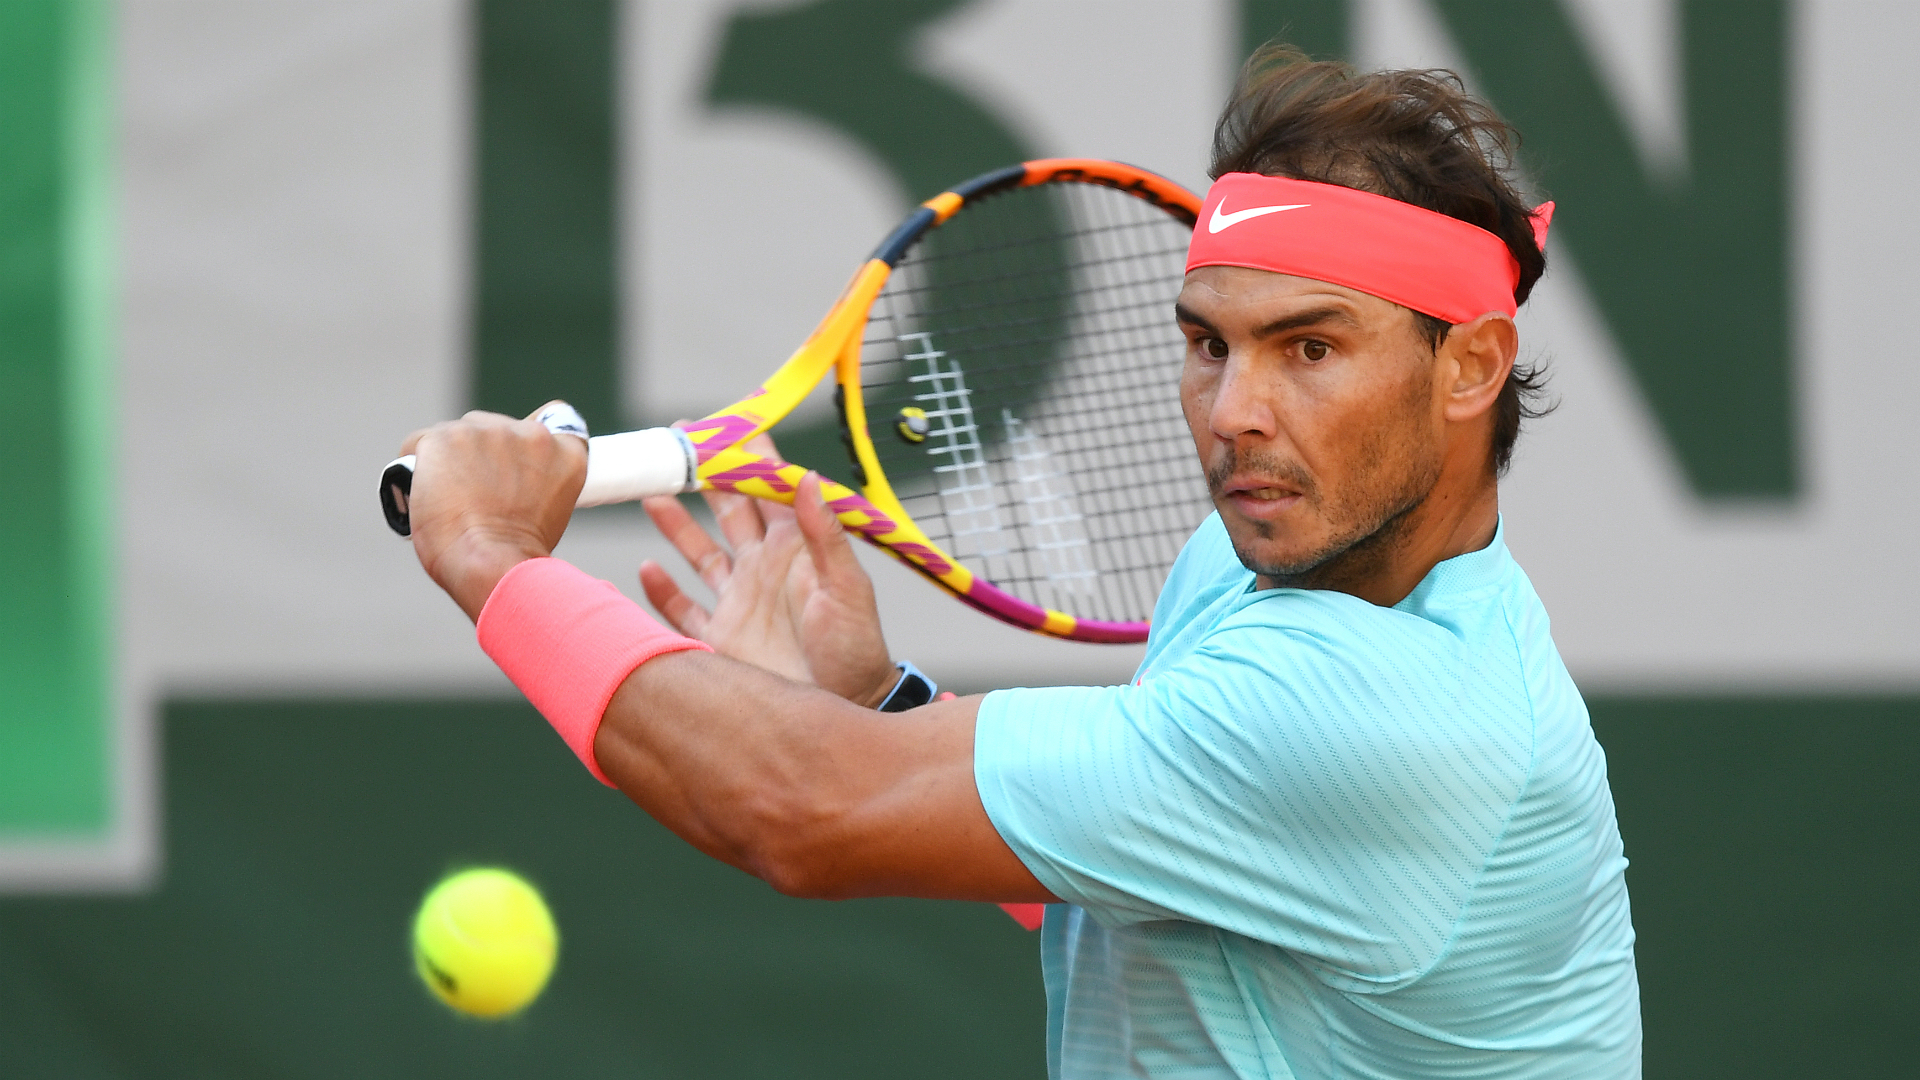 French Open 2020: Nadal makes light work of Korda in gusty Paris